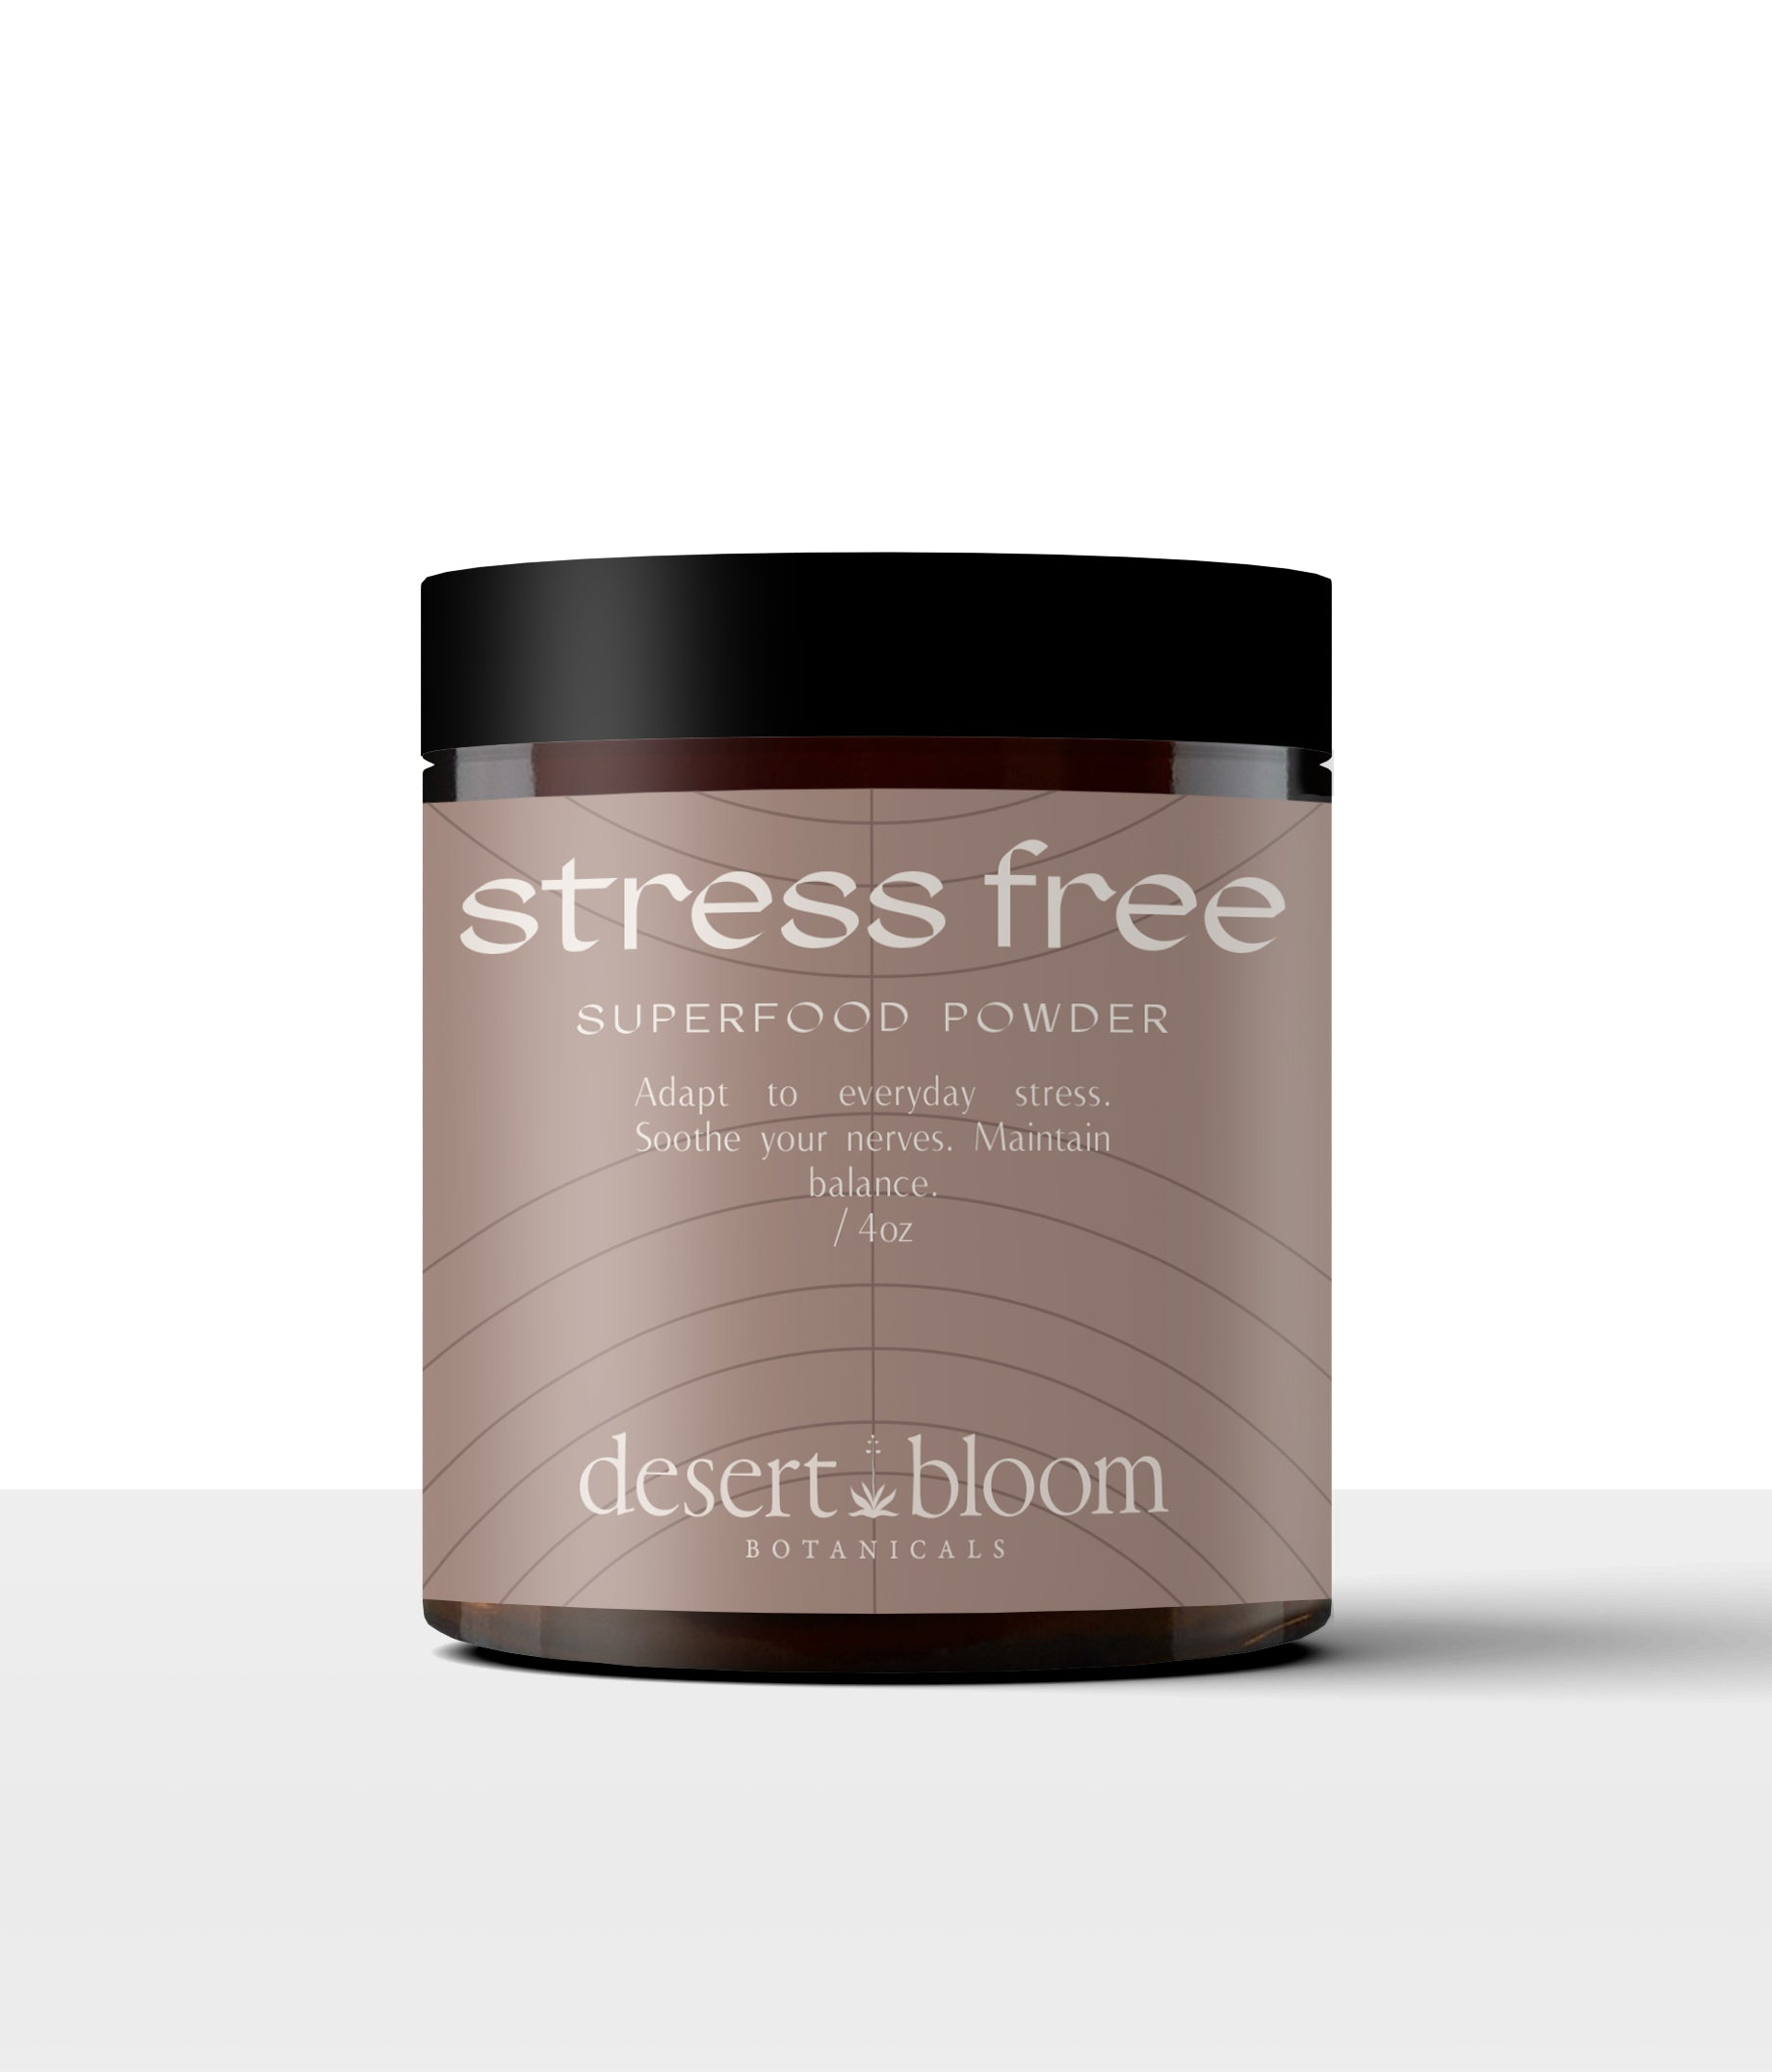 Stress Free Superfood Powder - Desert Bloom Botanicals